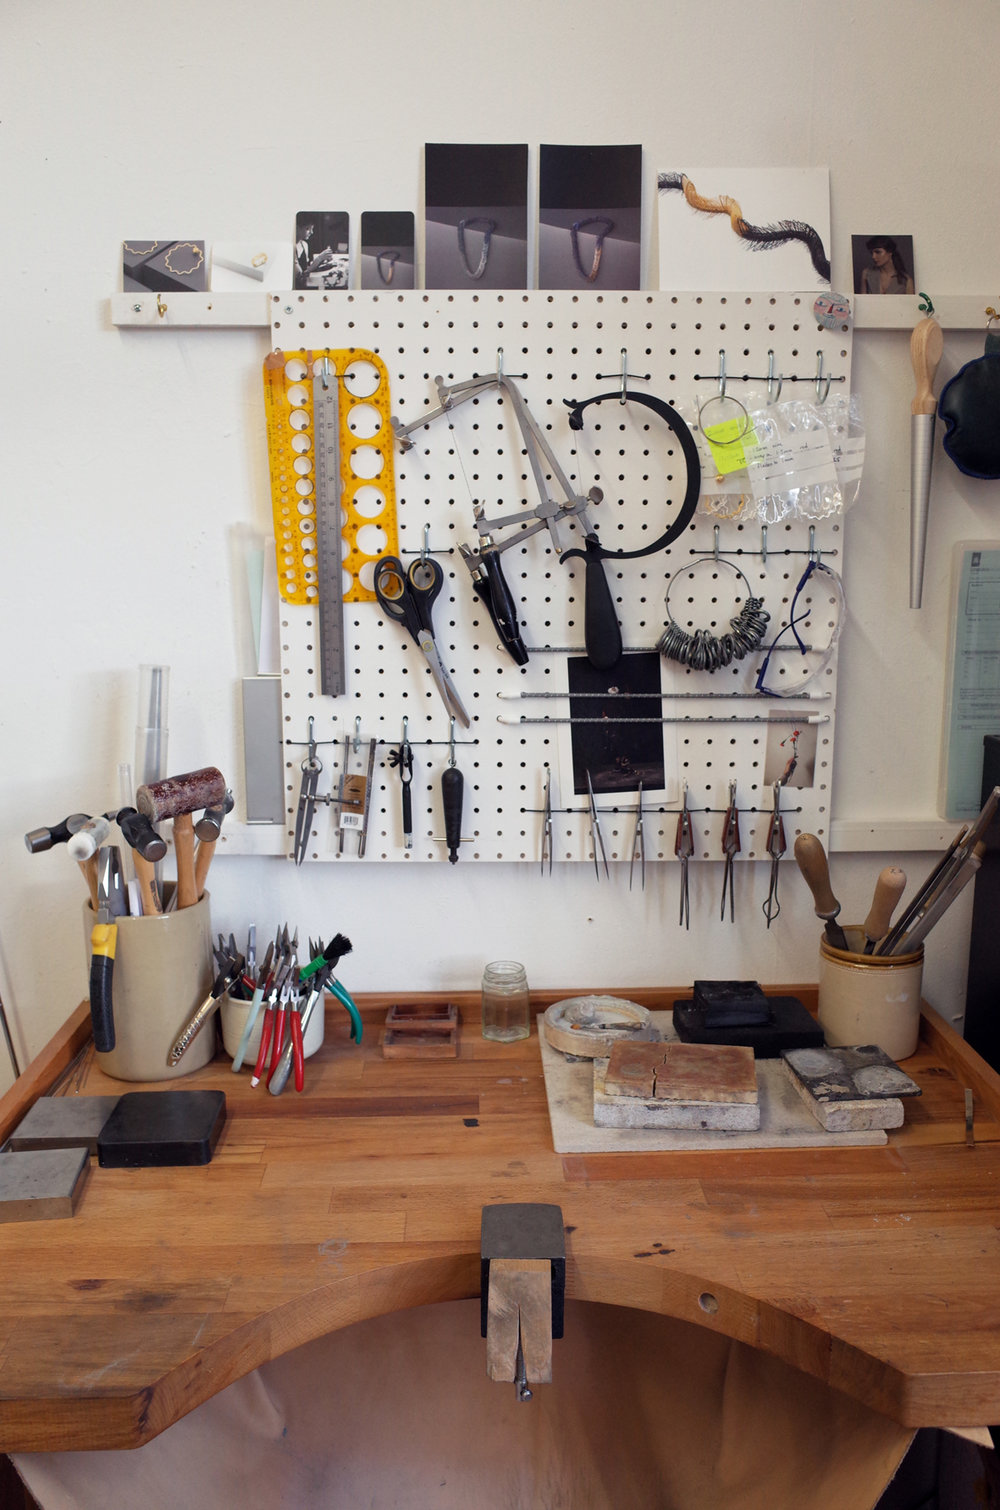 Each of my tools has a specific place, organised with the most often used within arms reach.